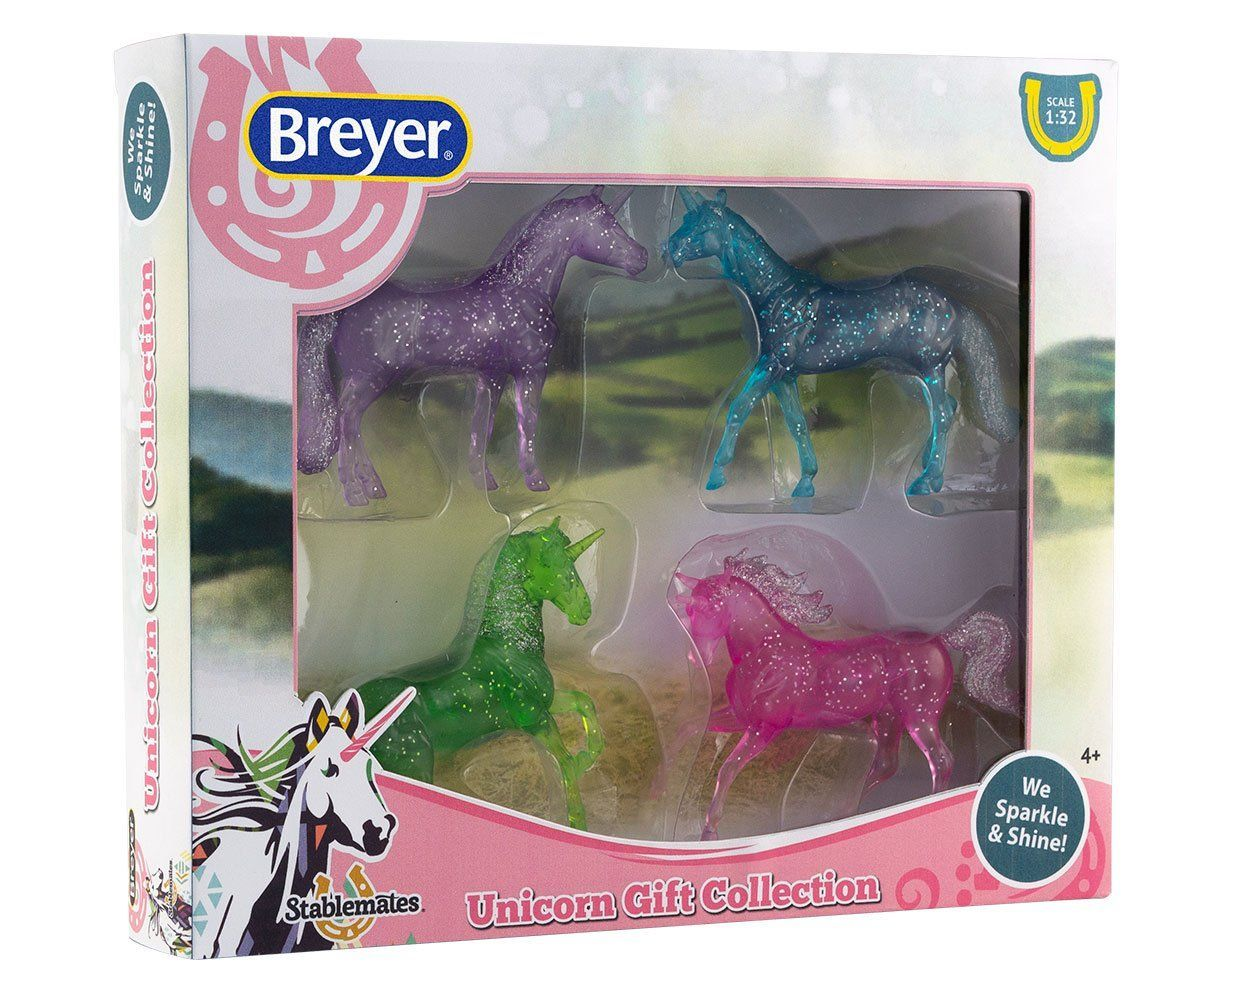 Breyer #6048 Unicorn Gift Collection Set - New Factory Sealed